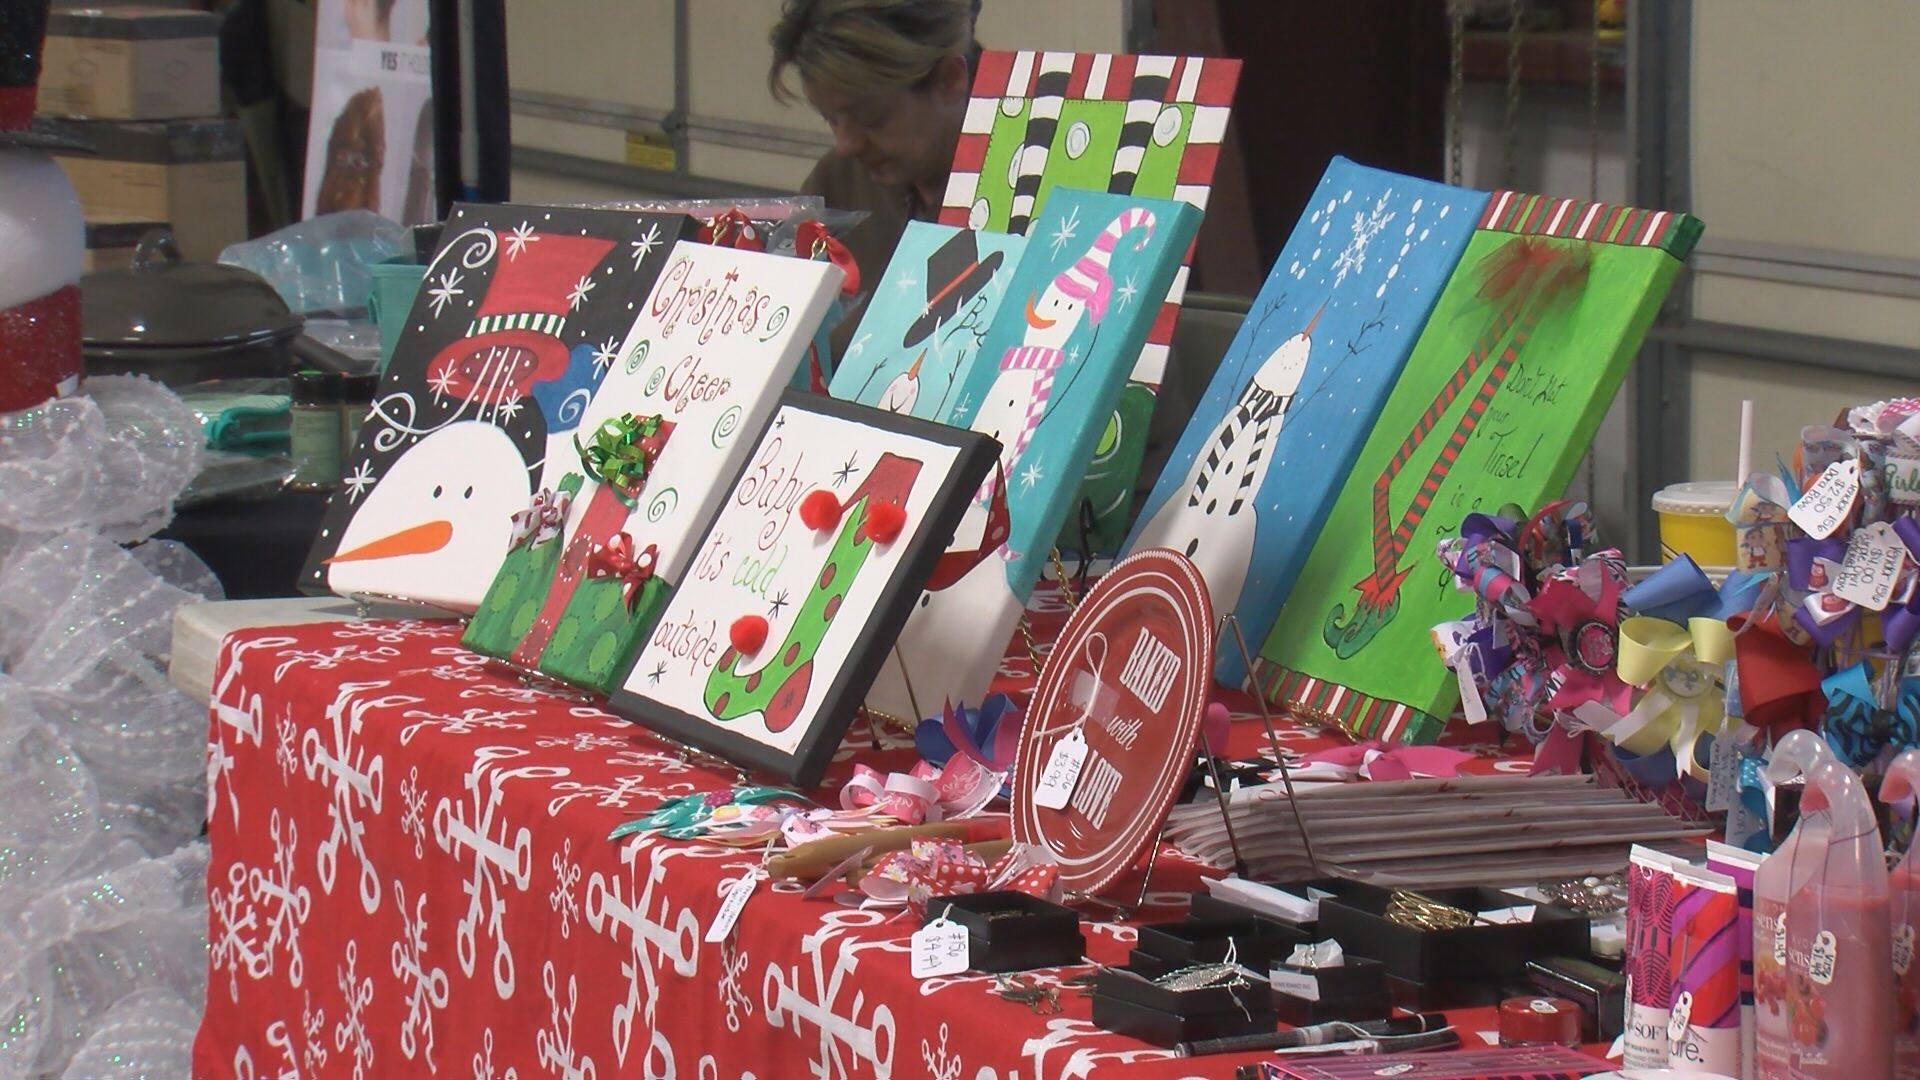 12-2-17 STOKES HOLIDAY CRAFT SHOW_520527